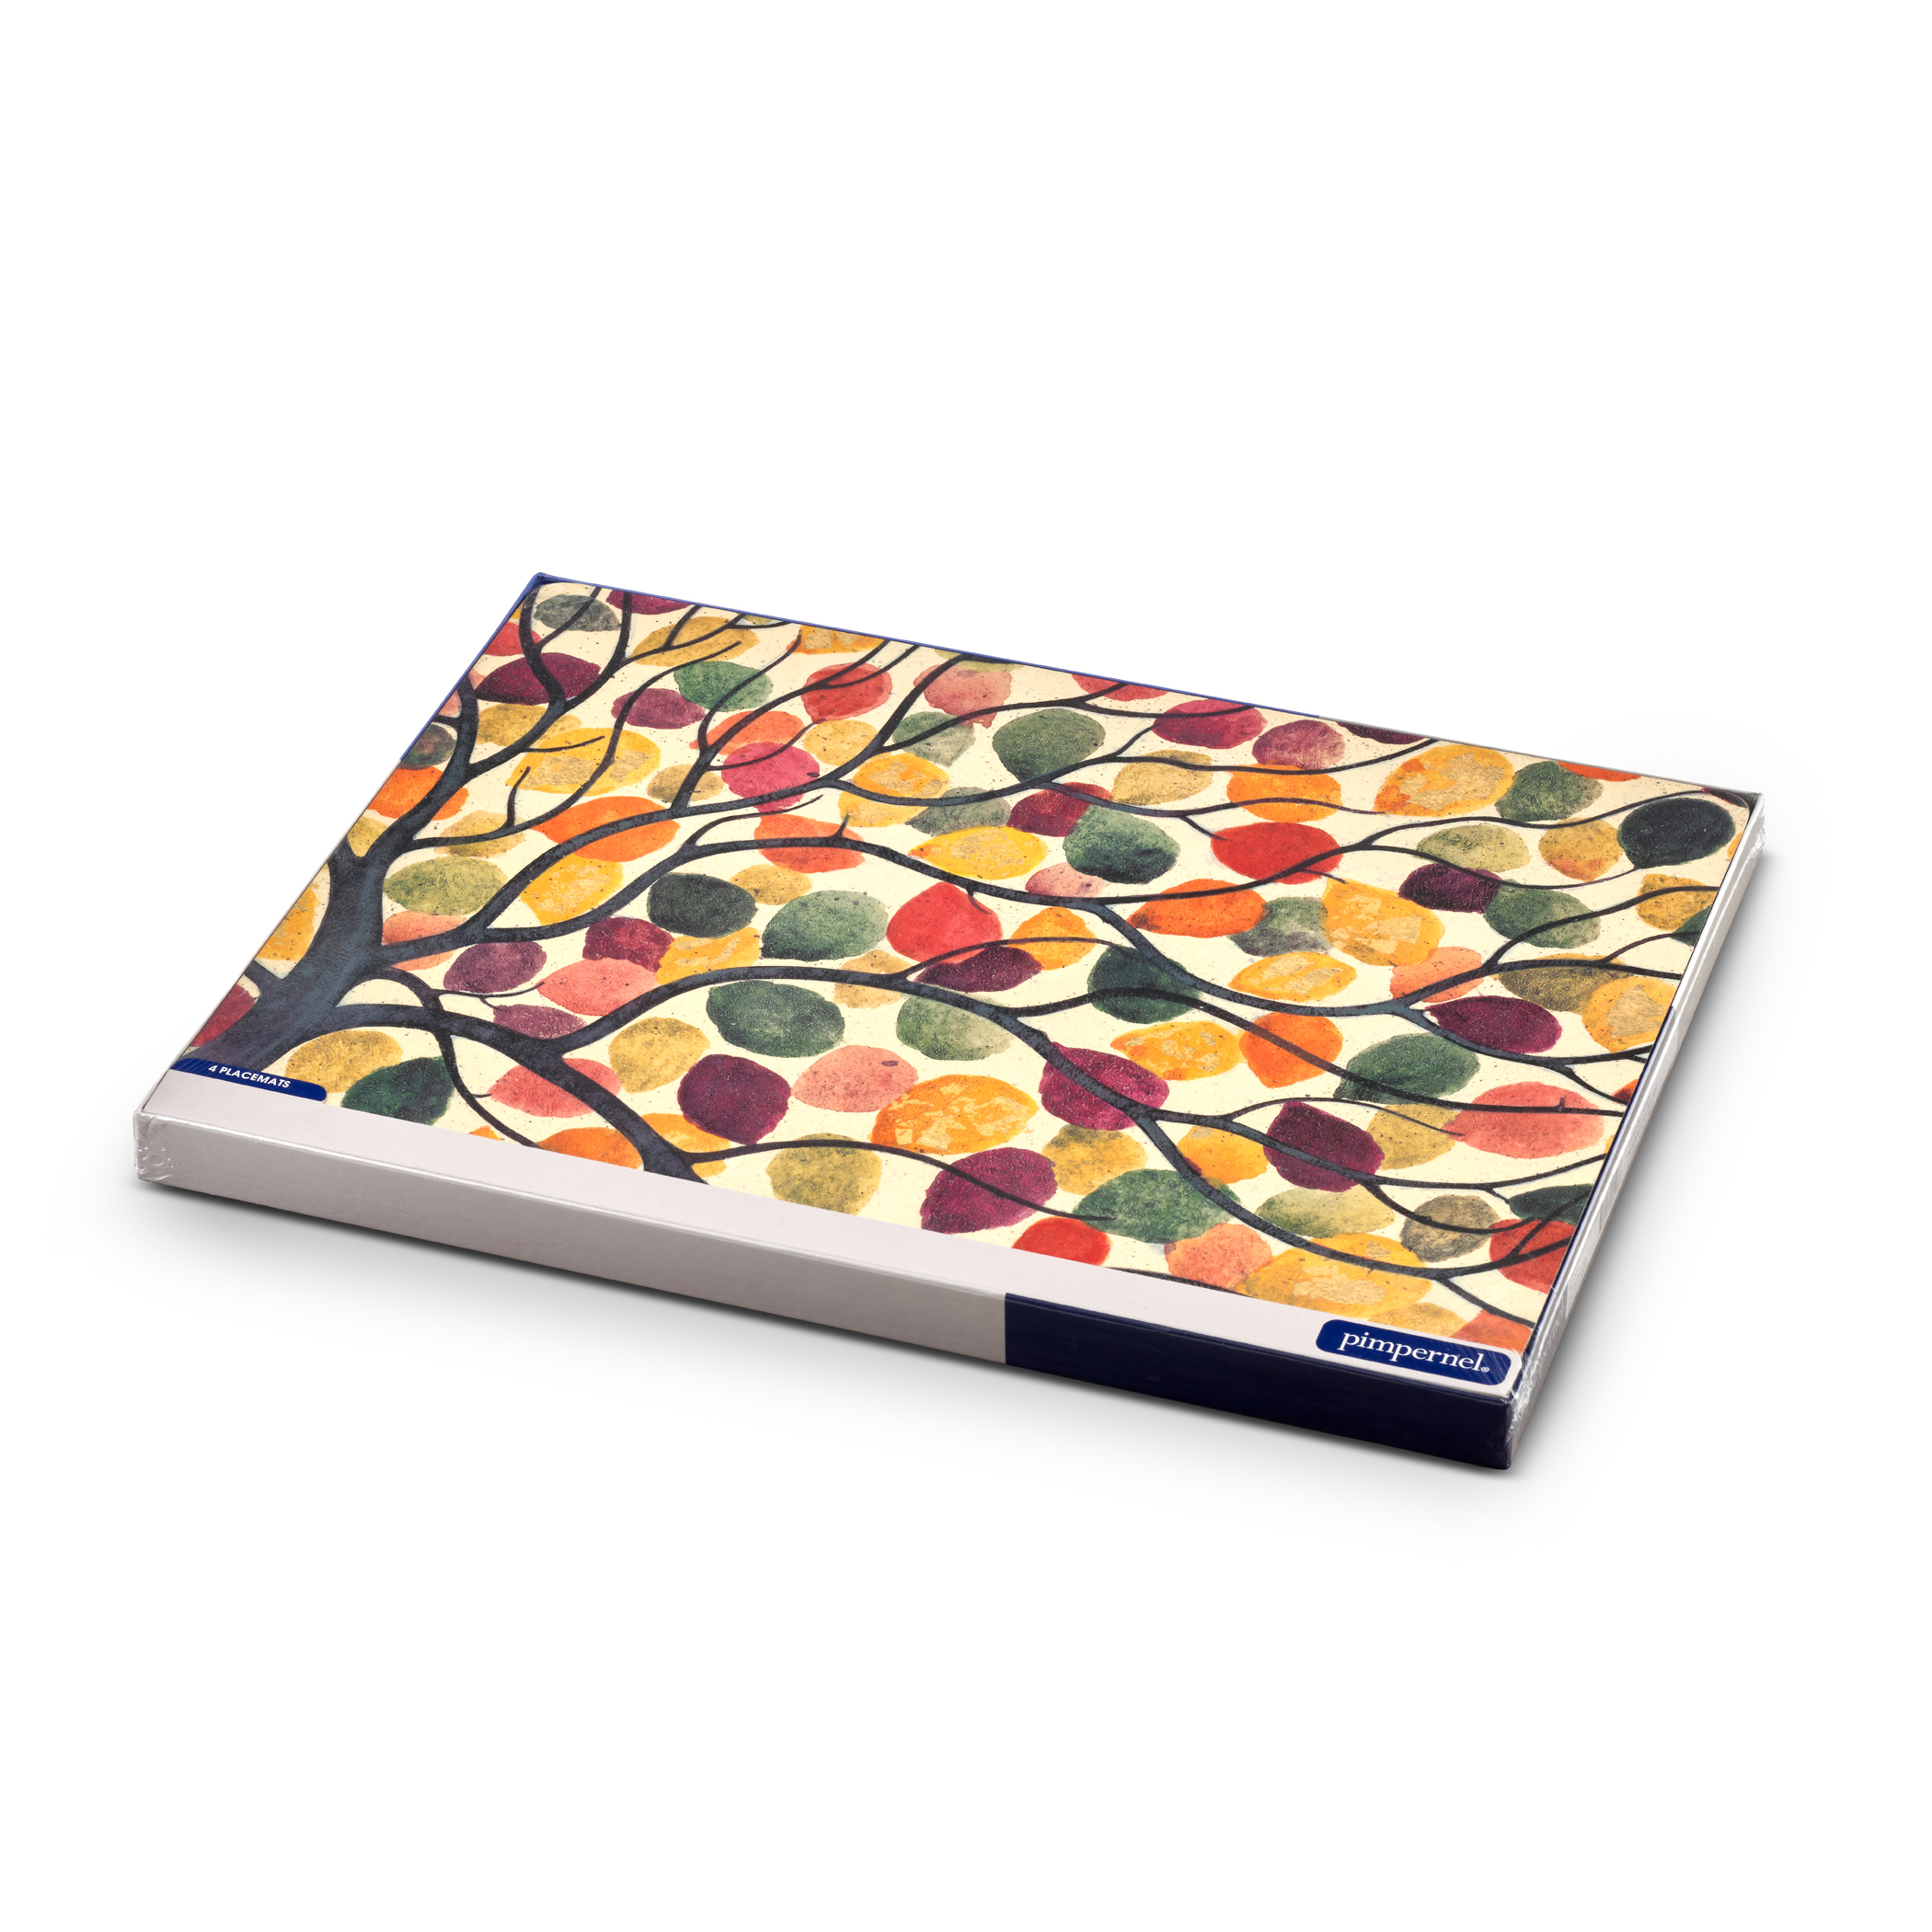 Pimpernel Dancing Branches Set of 4 Placemats image number 4